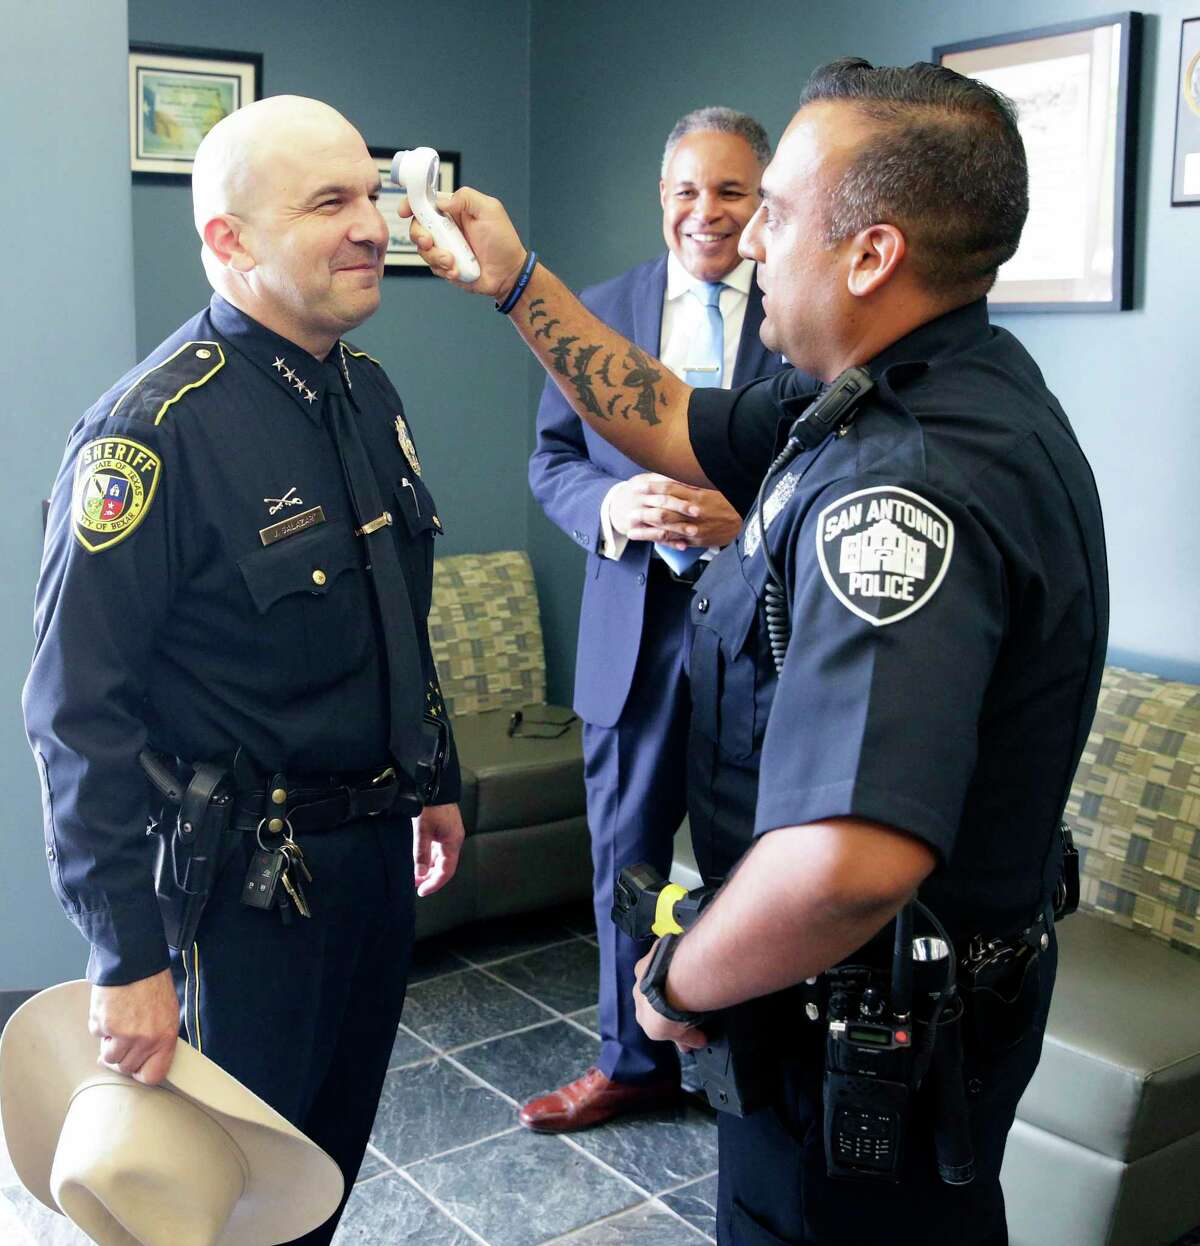 Bexar County Sheriff Javier Salazar has his temperature checked before Gov. Greg Abbott speaks at the San Antonio Operations Center on March 16, 2020. All Bexar County sheriff's deputies and San Antonio police officers are going through a similar process before they report for work.